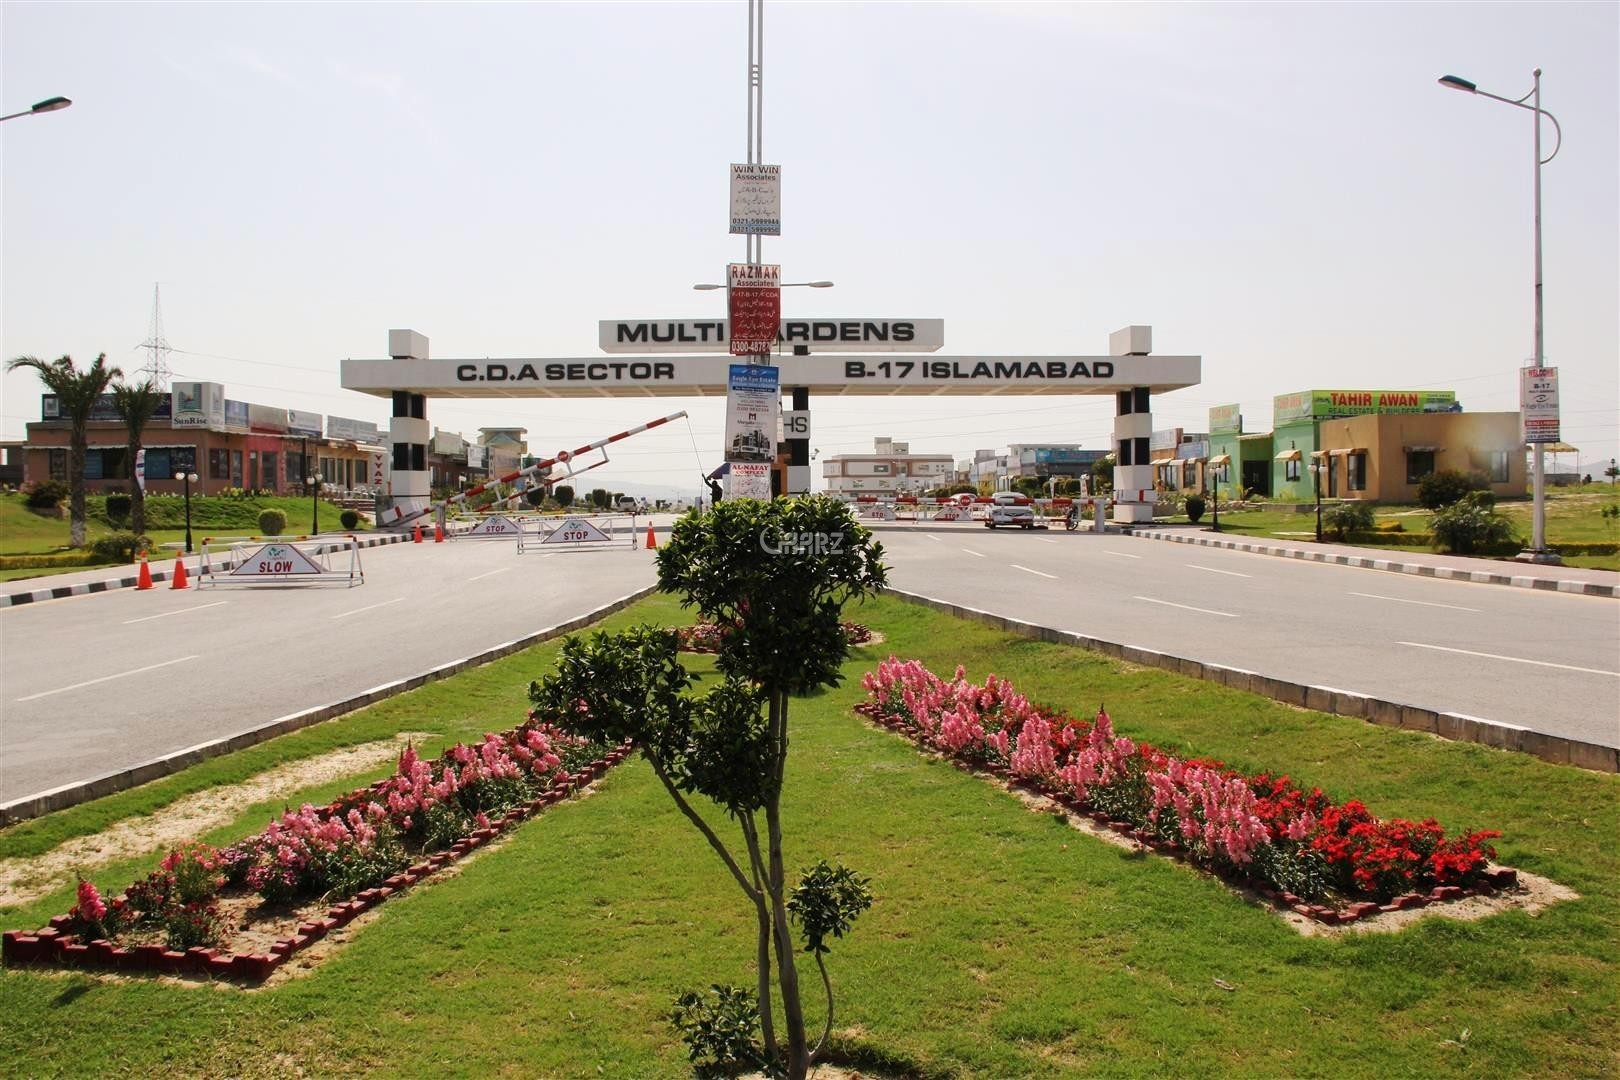 10 Marla Plot in B-17 Block-B1 Main Double Road, Islamabad is for Sale